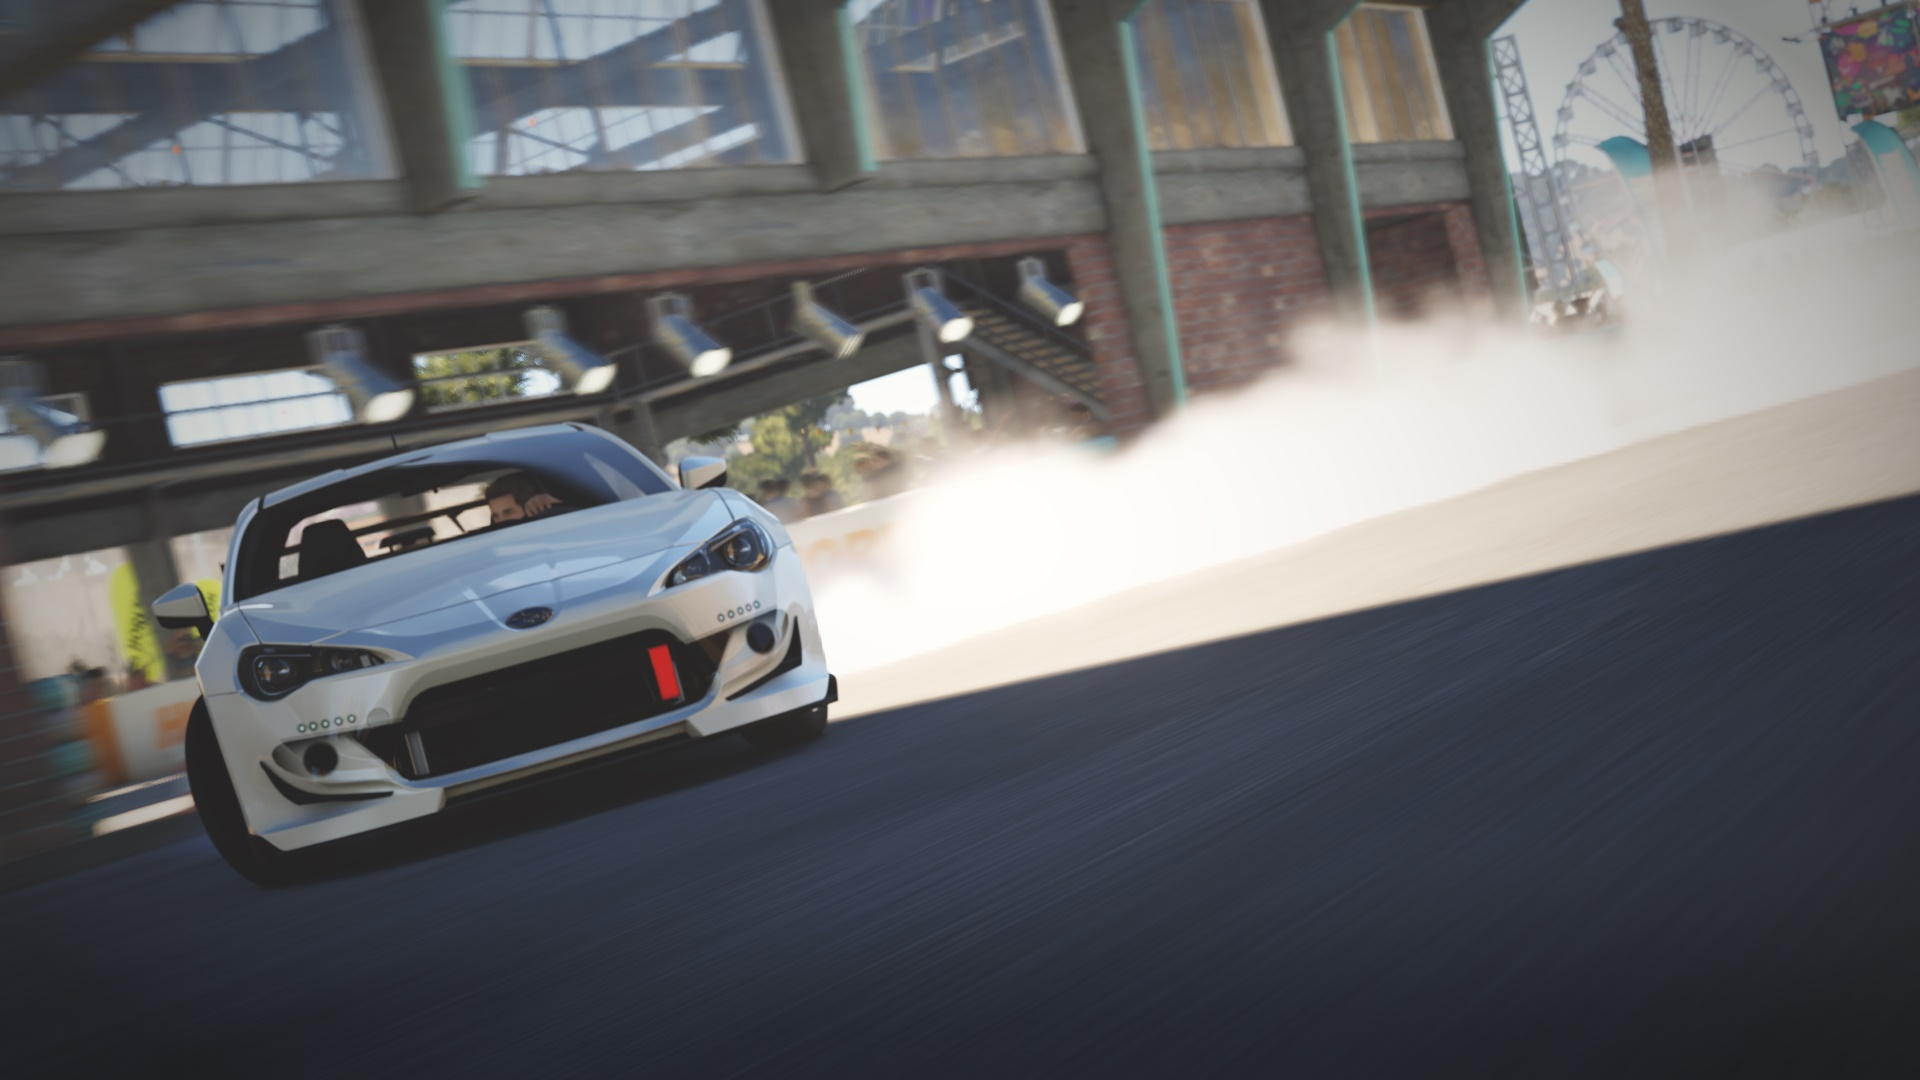 Subaru Brz Rocket Bunny White Show Your Drift Cars Fh2 Page 3 Lounge Forza